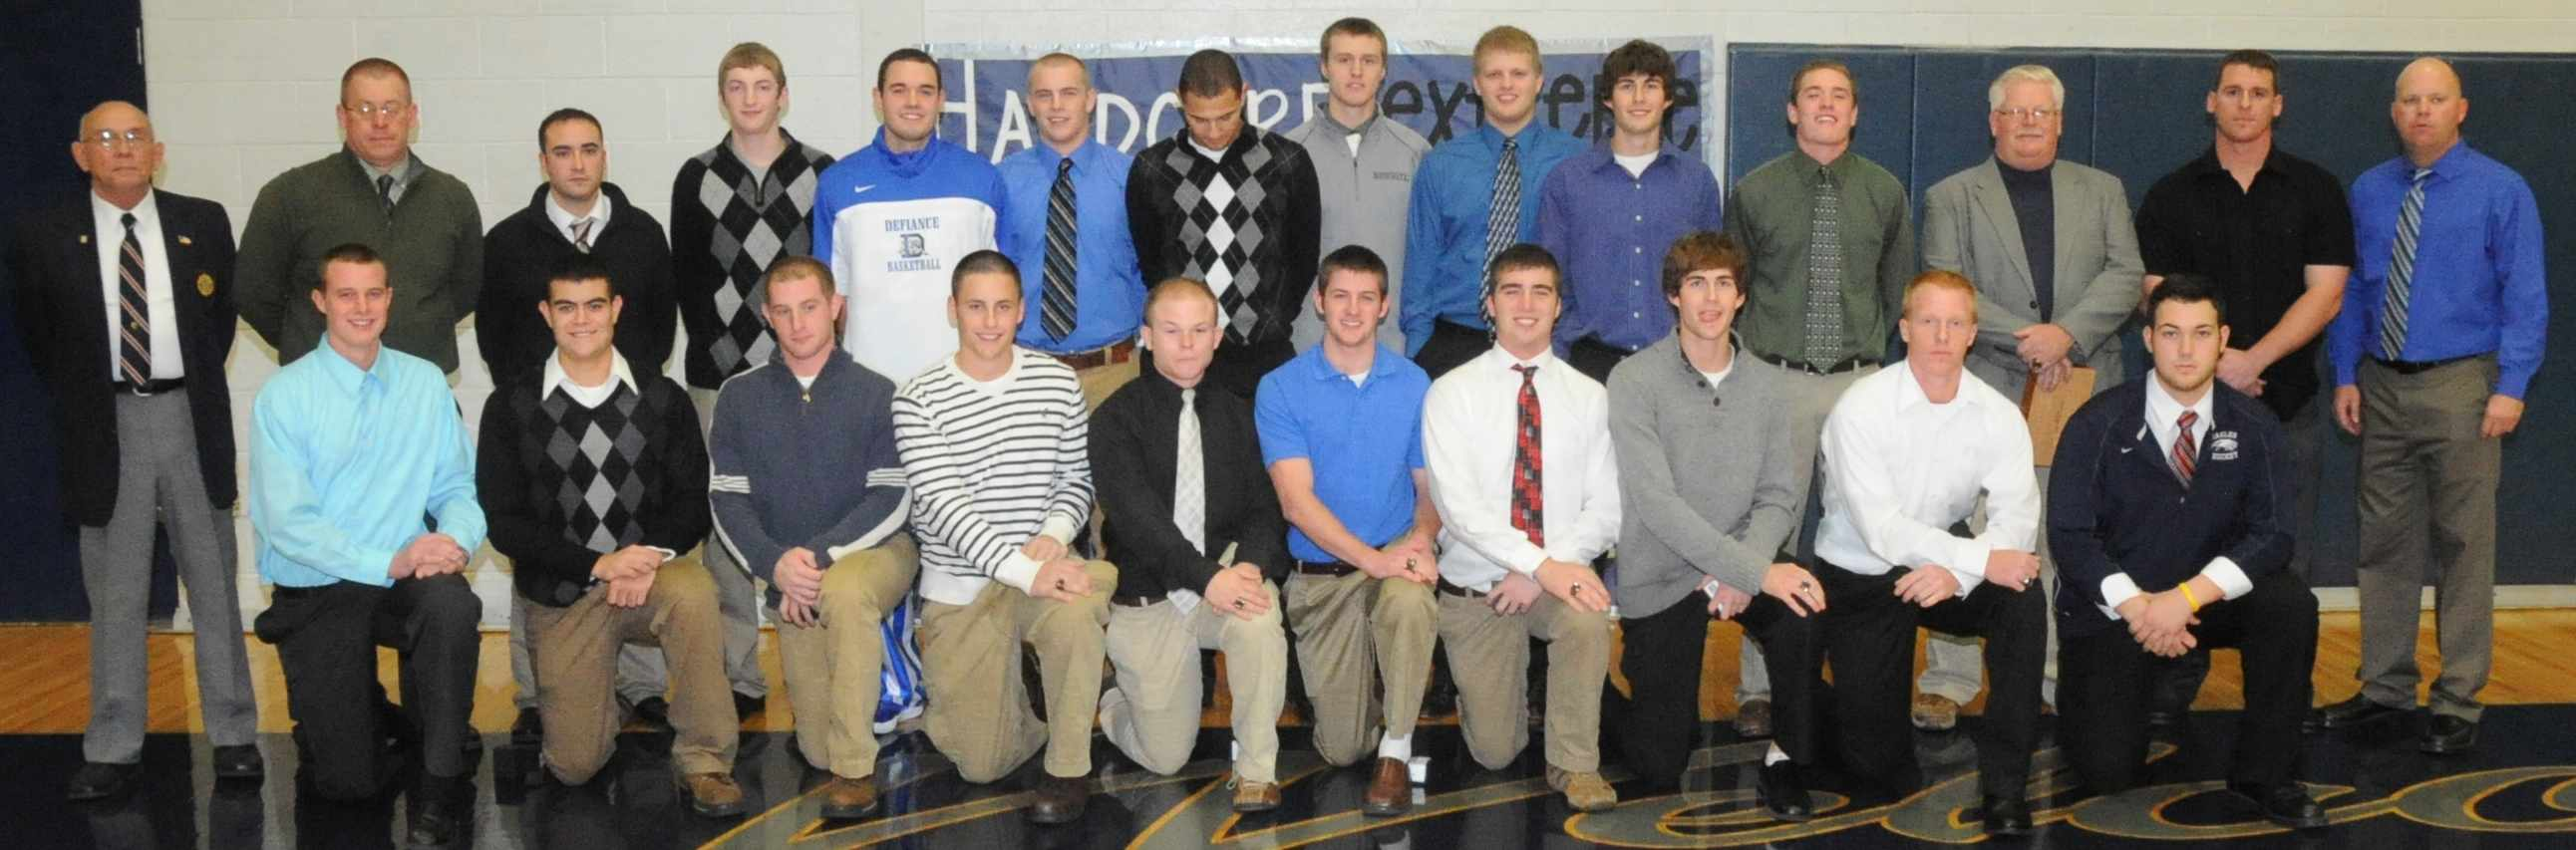 2011 State Champion Ring Ceremony